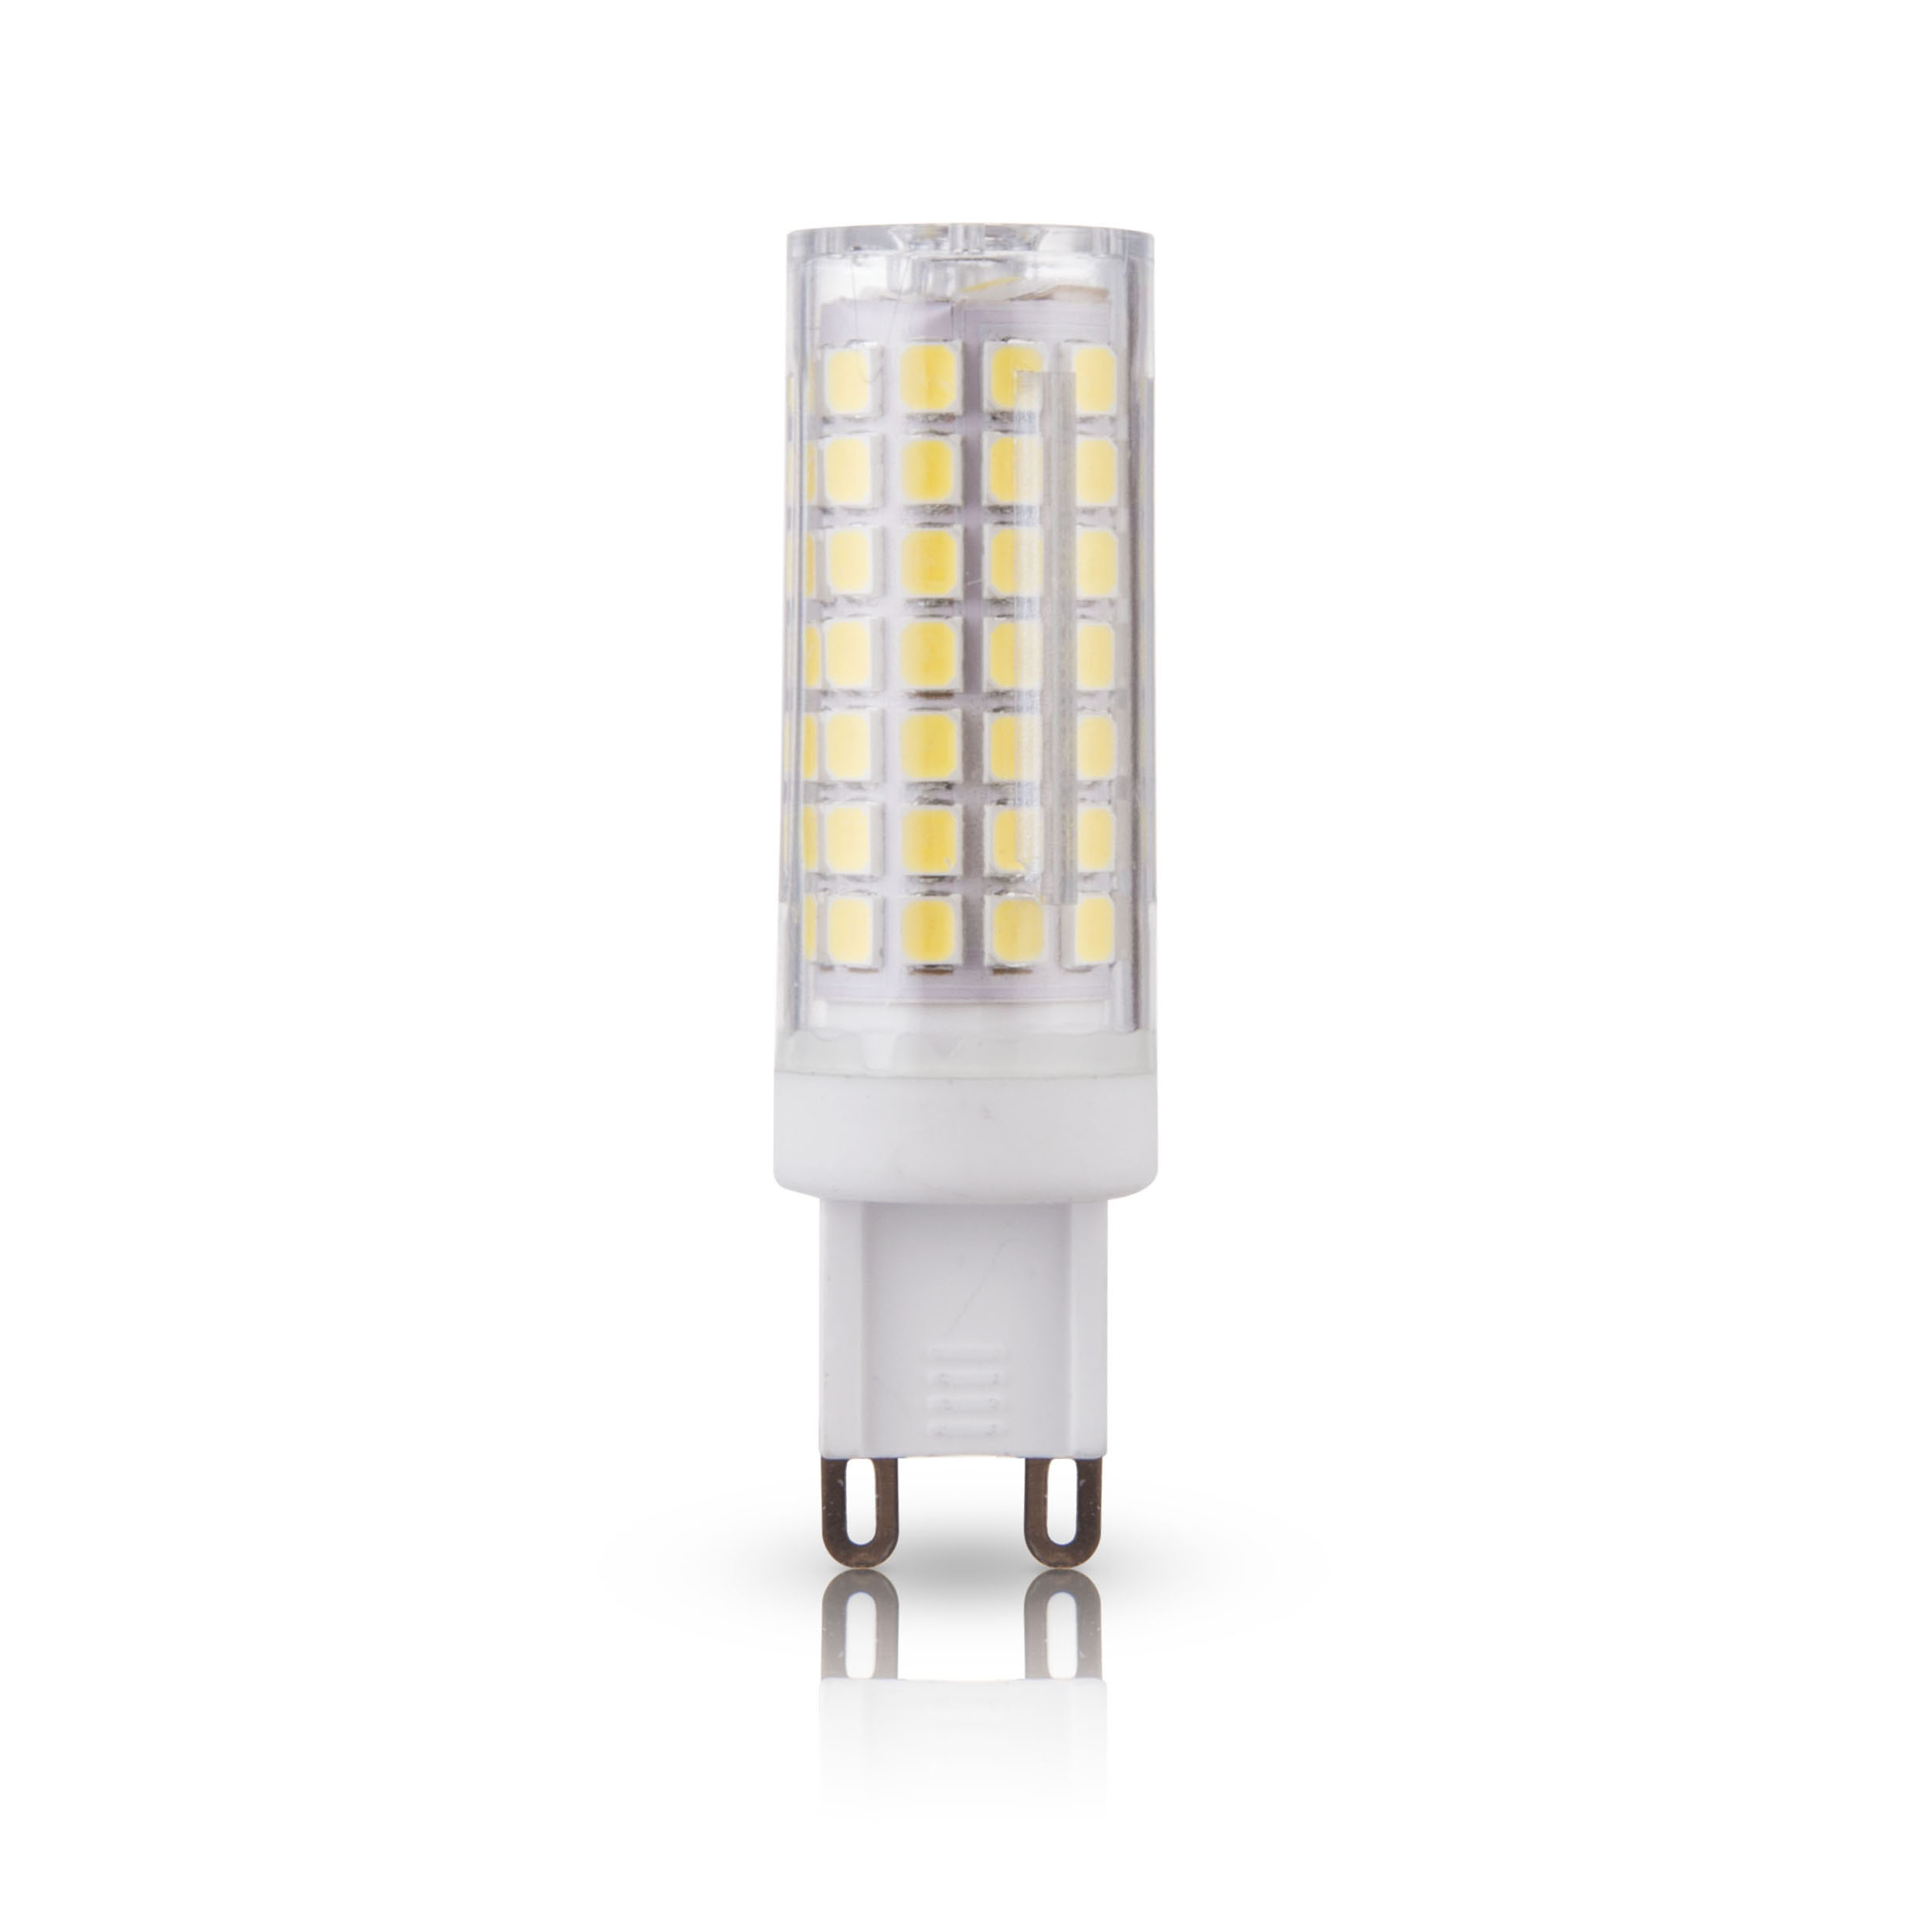 Led G9 7w Lumenbasic G9 Led Bulb 50w Equivalent 7w 60w Replacement